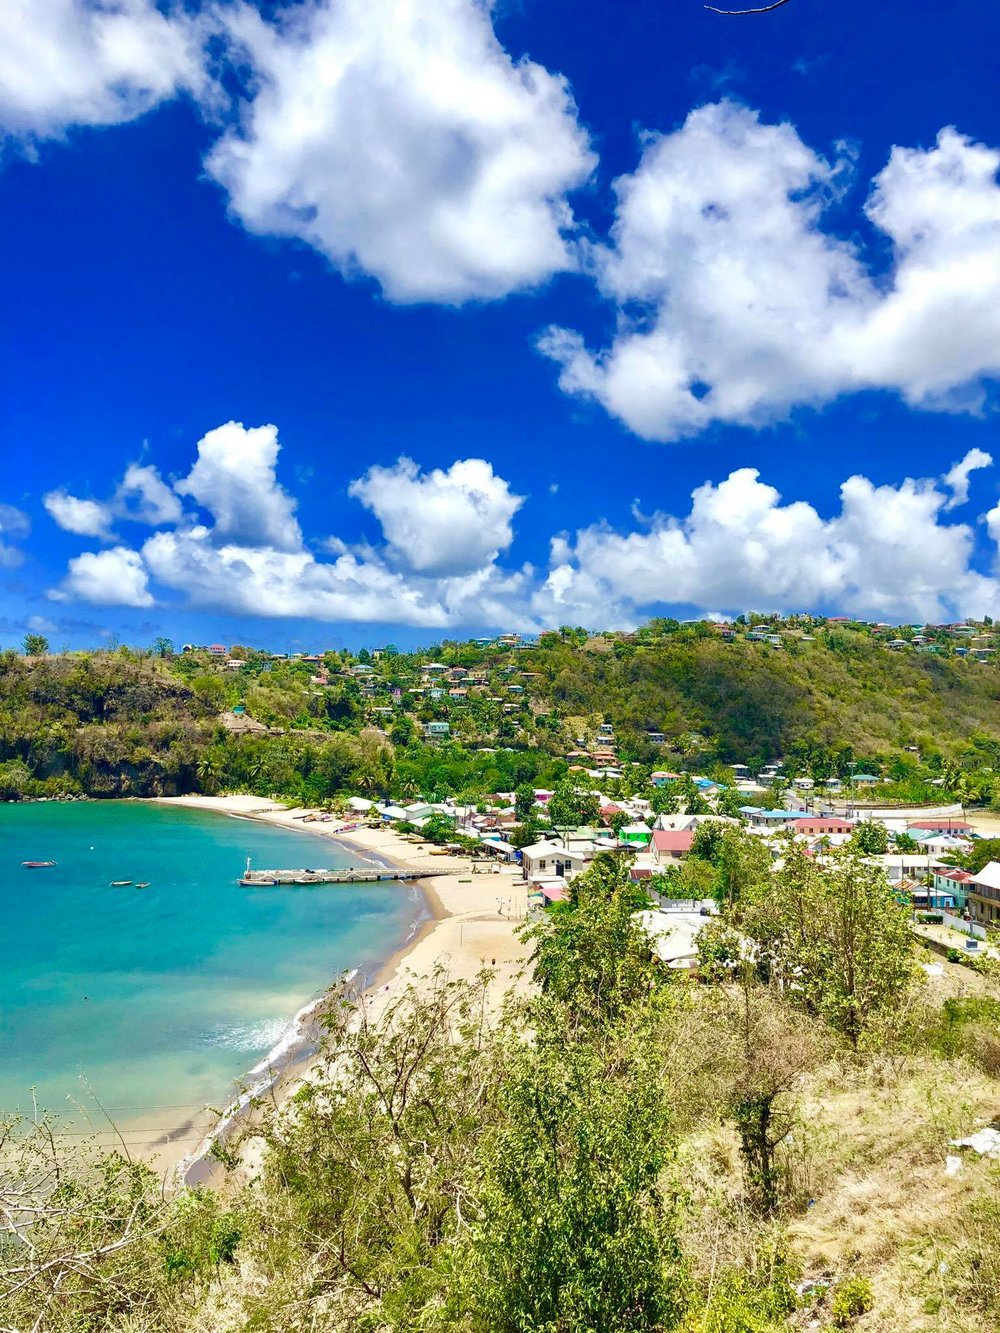 Kach Solo Travels in 2019 Beautiful St Lucia24.jpg